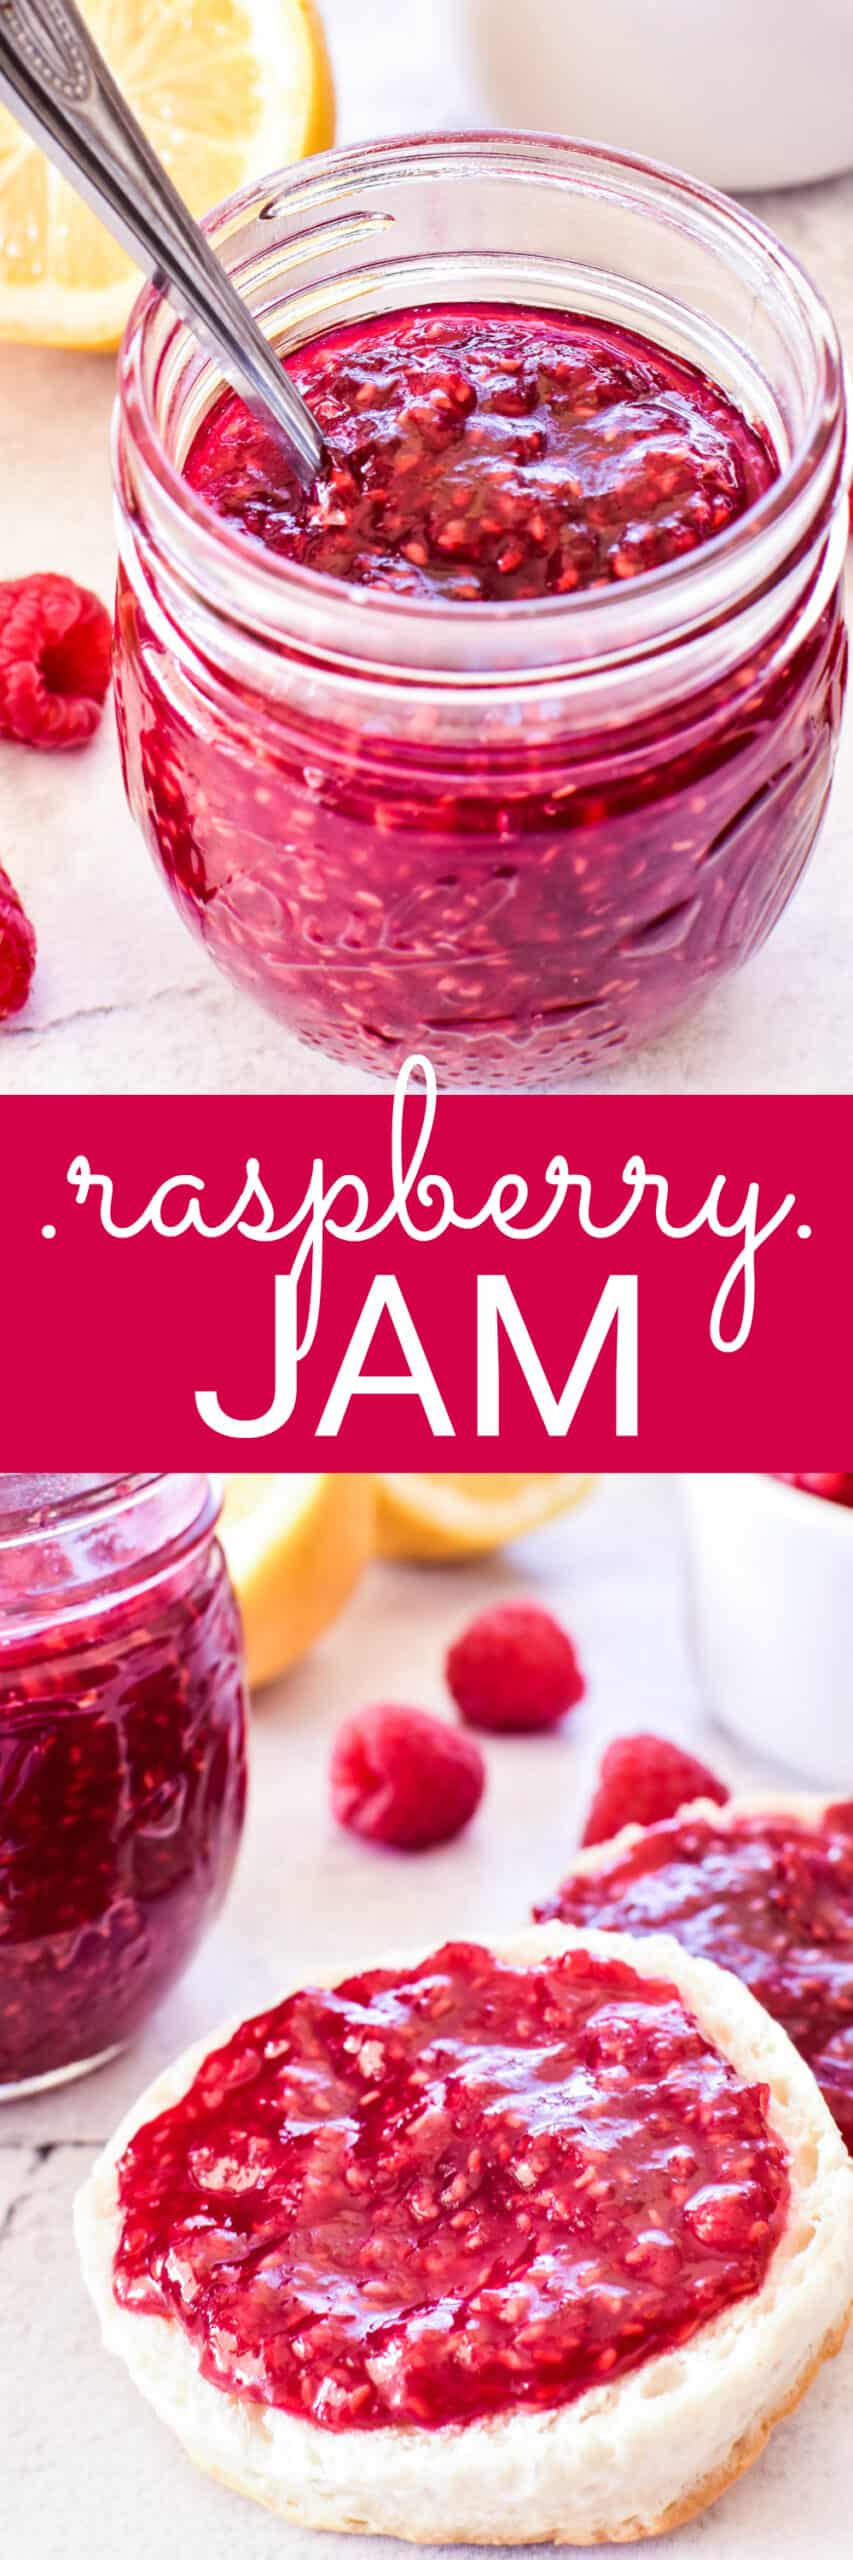 Collage image of Raspberry jam in jar and on biscuit